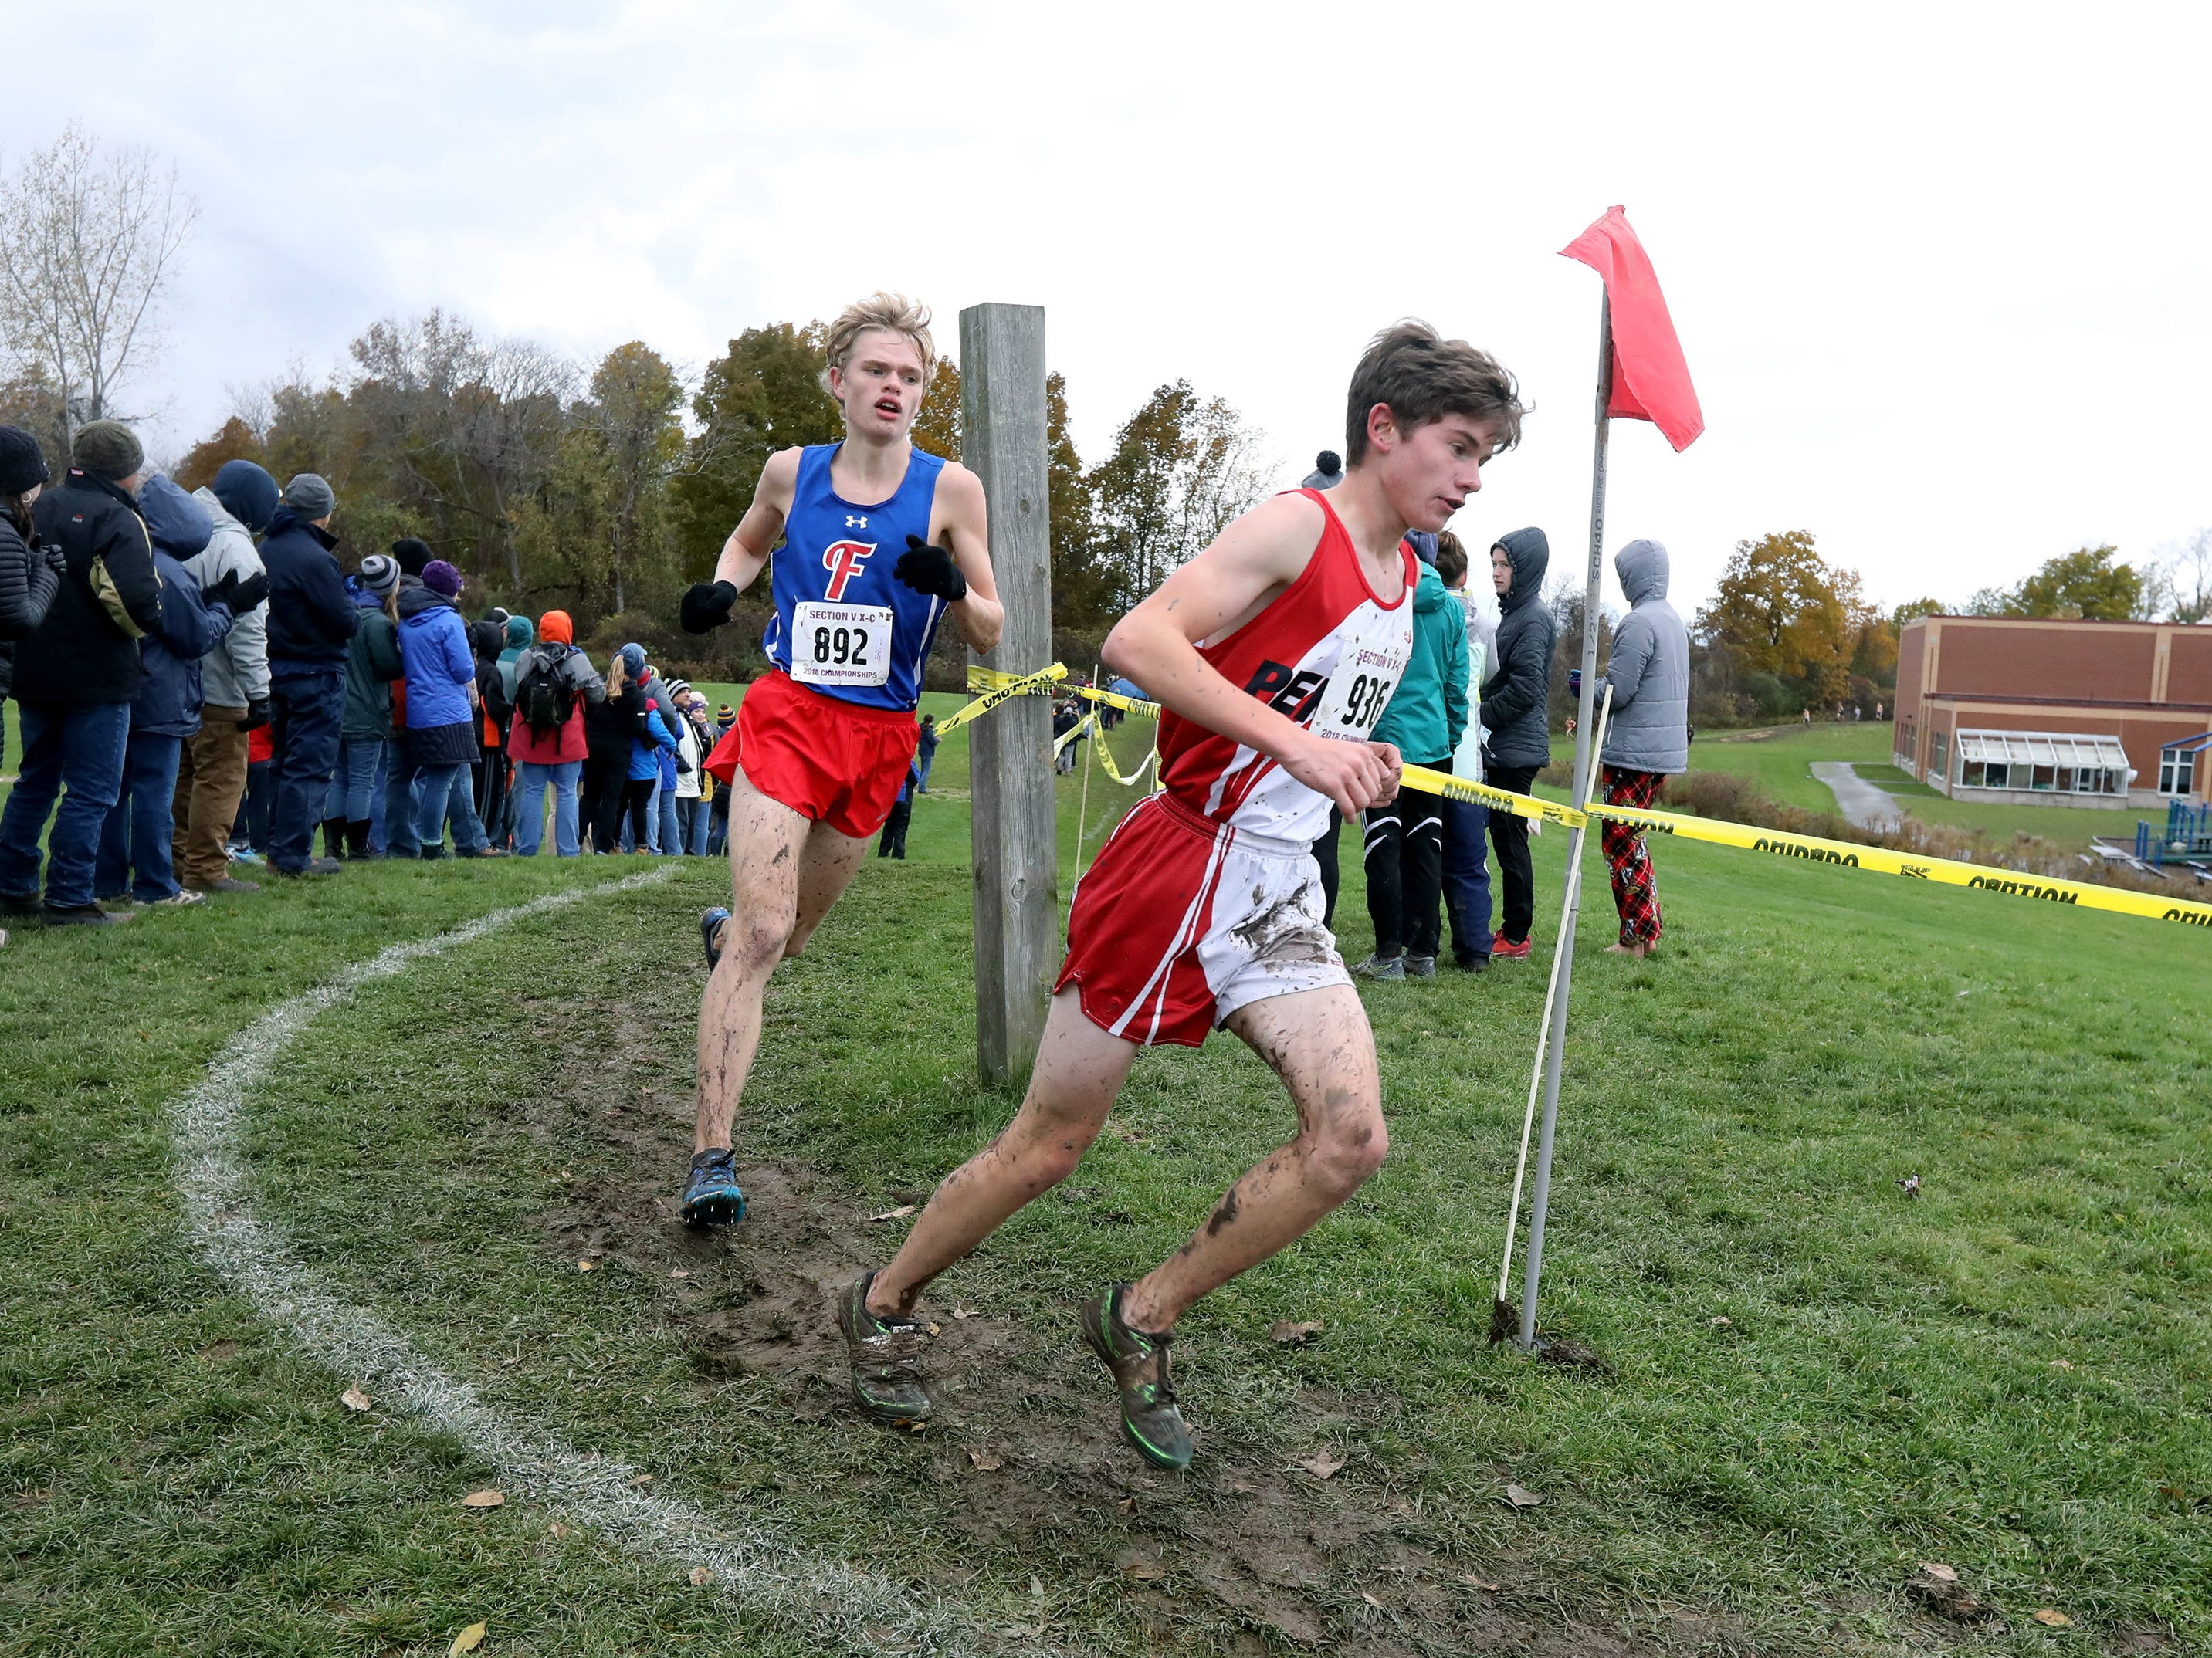 Boys Class A: Penfield's Zachary Gauronski finished sixth with a time of 16:50.7 and is followed by Fairport's Matt Abell, who was ninth with a time of 17:13.8 during the Section V Cross Country meet at Midlakes High School.